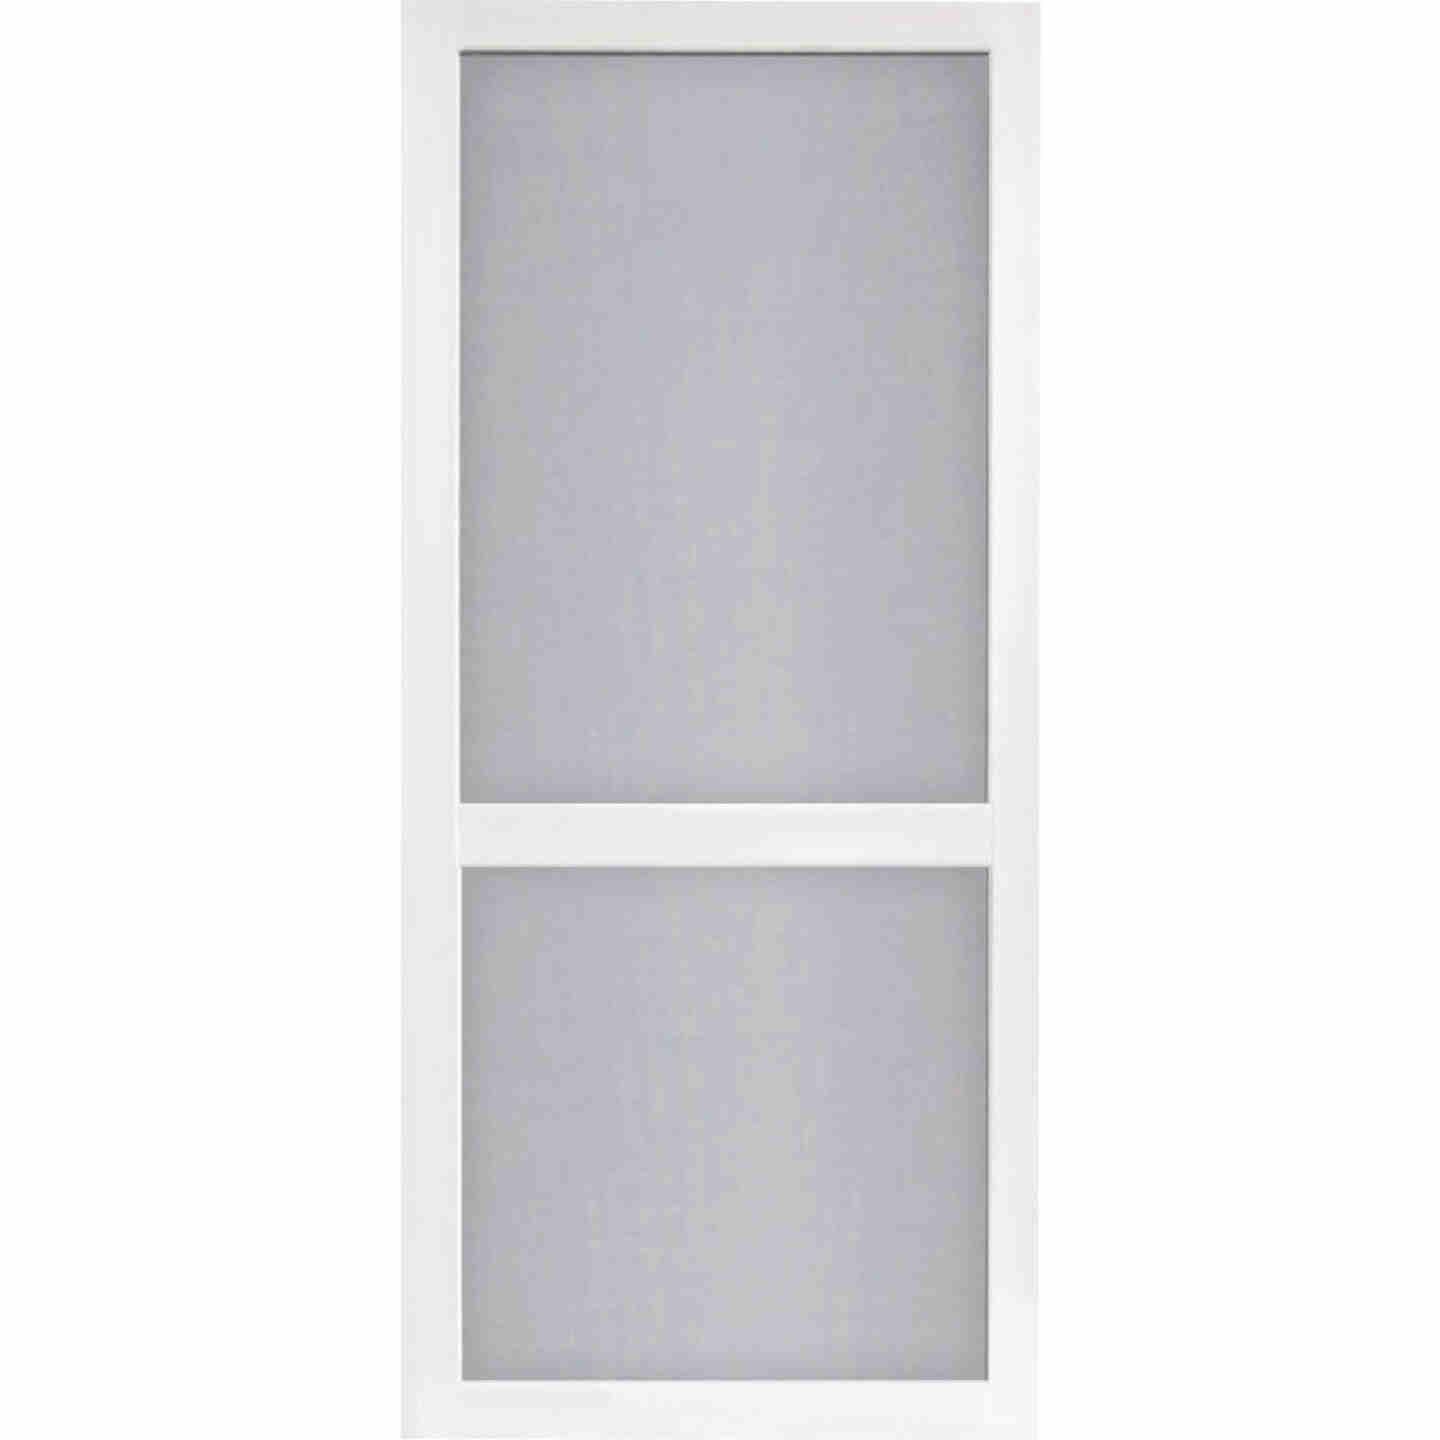 Screen Tight Vinylcraft 36 In. W x 80 In. H x 1 In. Thick White Vinyl Screen Door Image 1